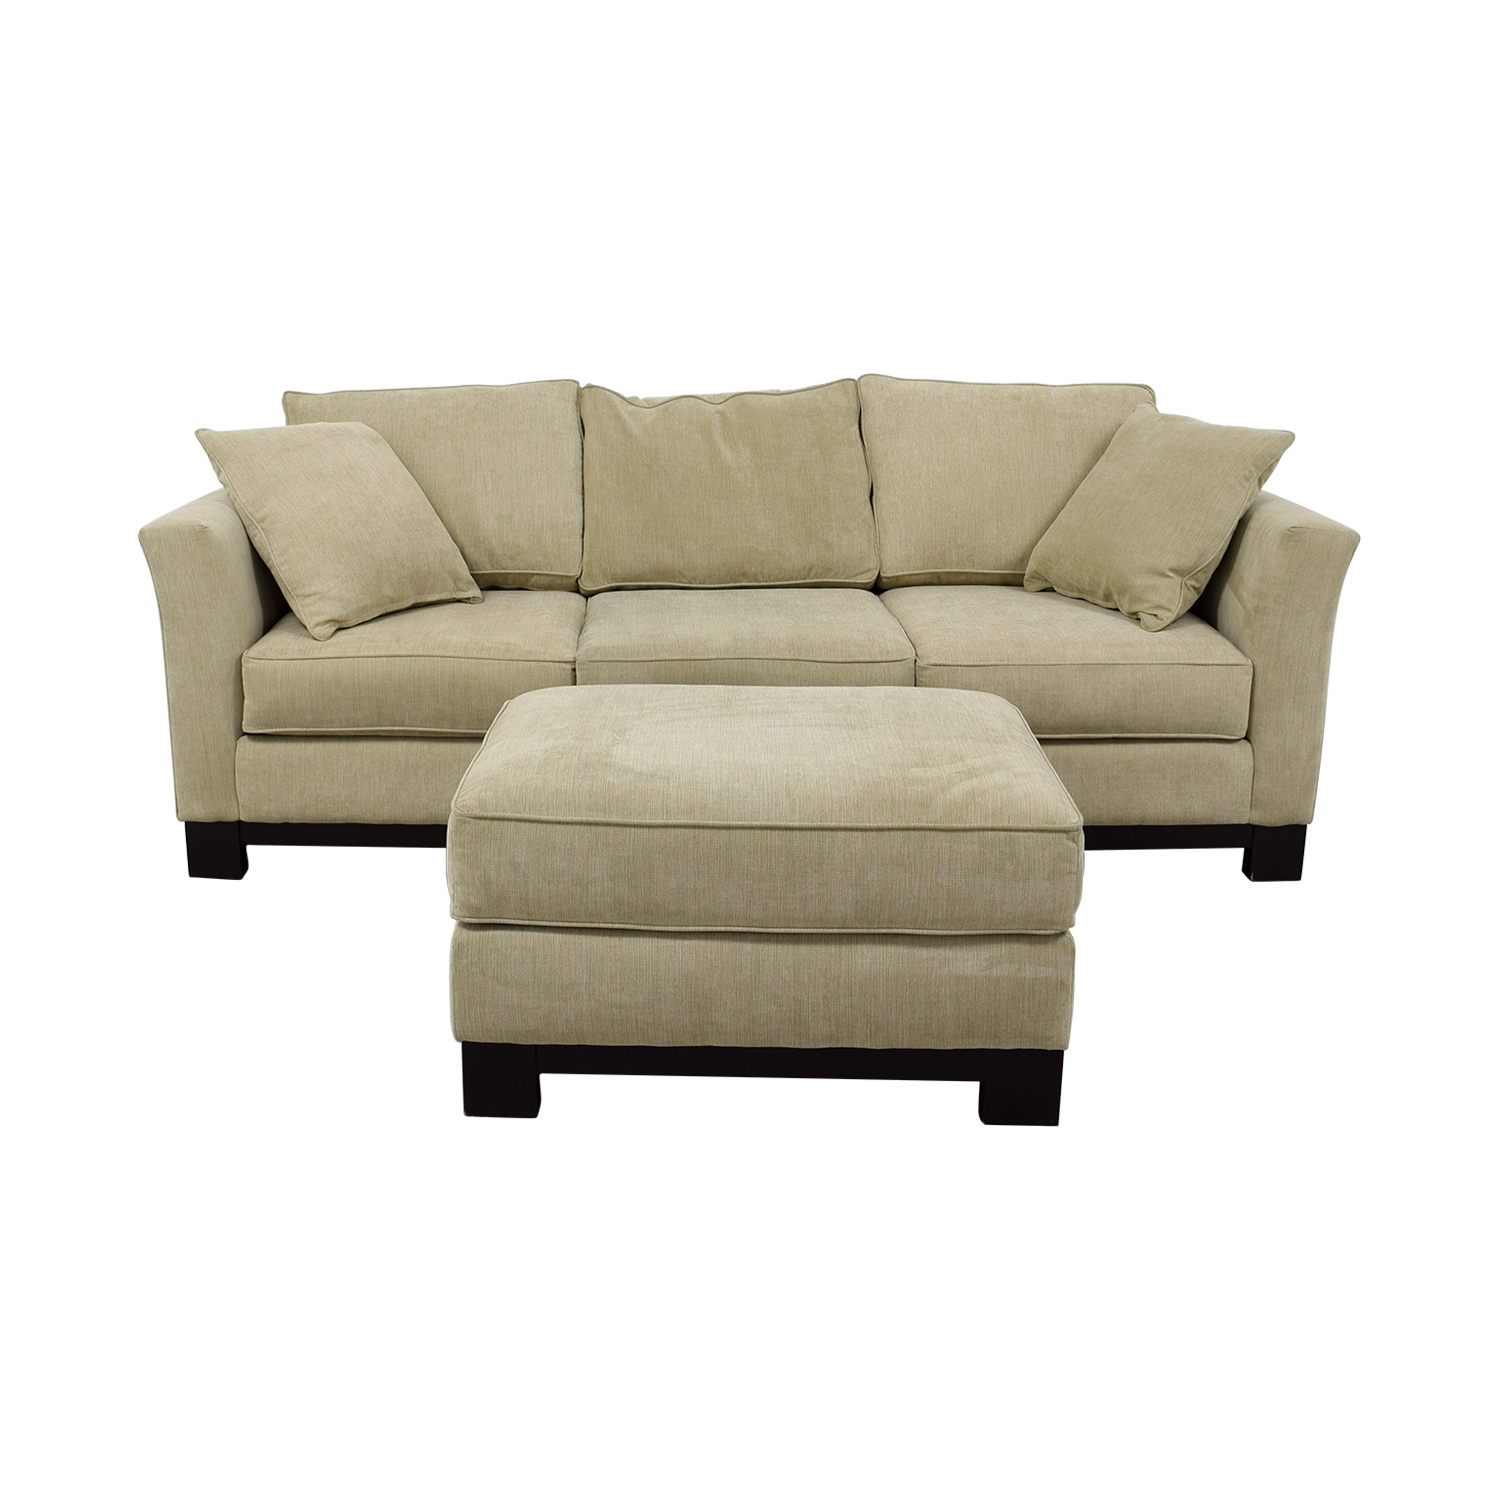 [%60% Off – Macy's Macy's Grey Fabric Couch And Large Ottoman / Sofas Throughout Current Sofas With Large Ottoman|sofas With Large Ottoman In Well Known 60% Off – Macy's Macy's Grey Fabric Couch And Large Ottoman / Sofas|most Popular Sofas With Large Ottoman With Regard To 60% Off – Macy's Macy's Grey Fabric Couch And Large Ottoman / Sofas|trendy 60% Off – Macy's Macy's Grey Fabric Couch And Large Ottoman / Sofas Within Sofas With Large Ottoman%] (View 16 of 20)